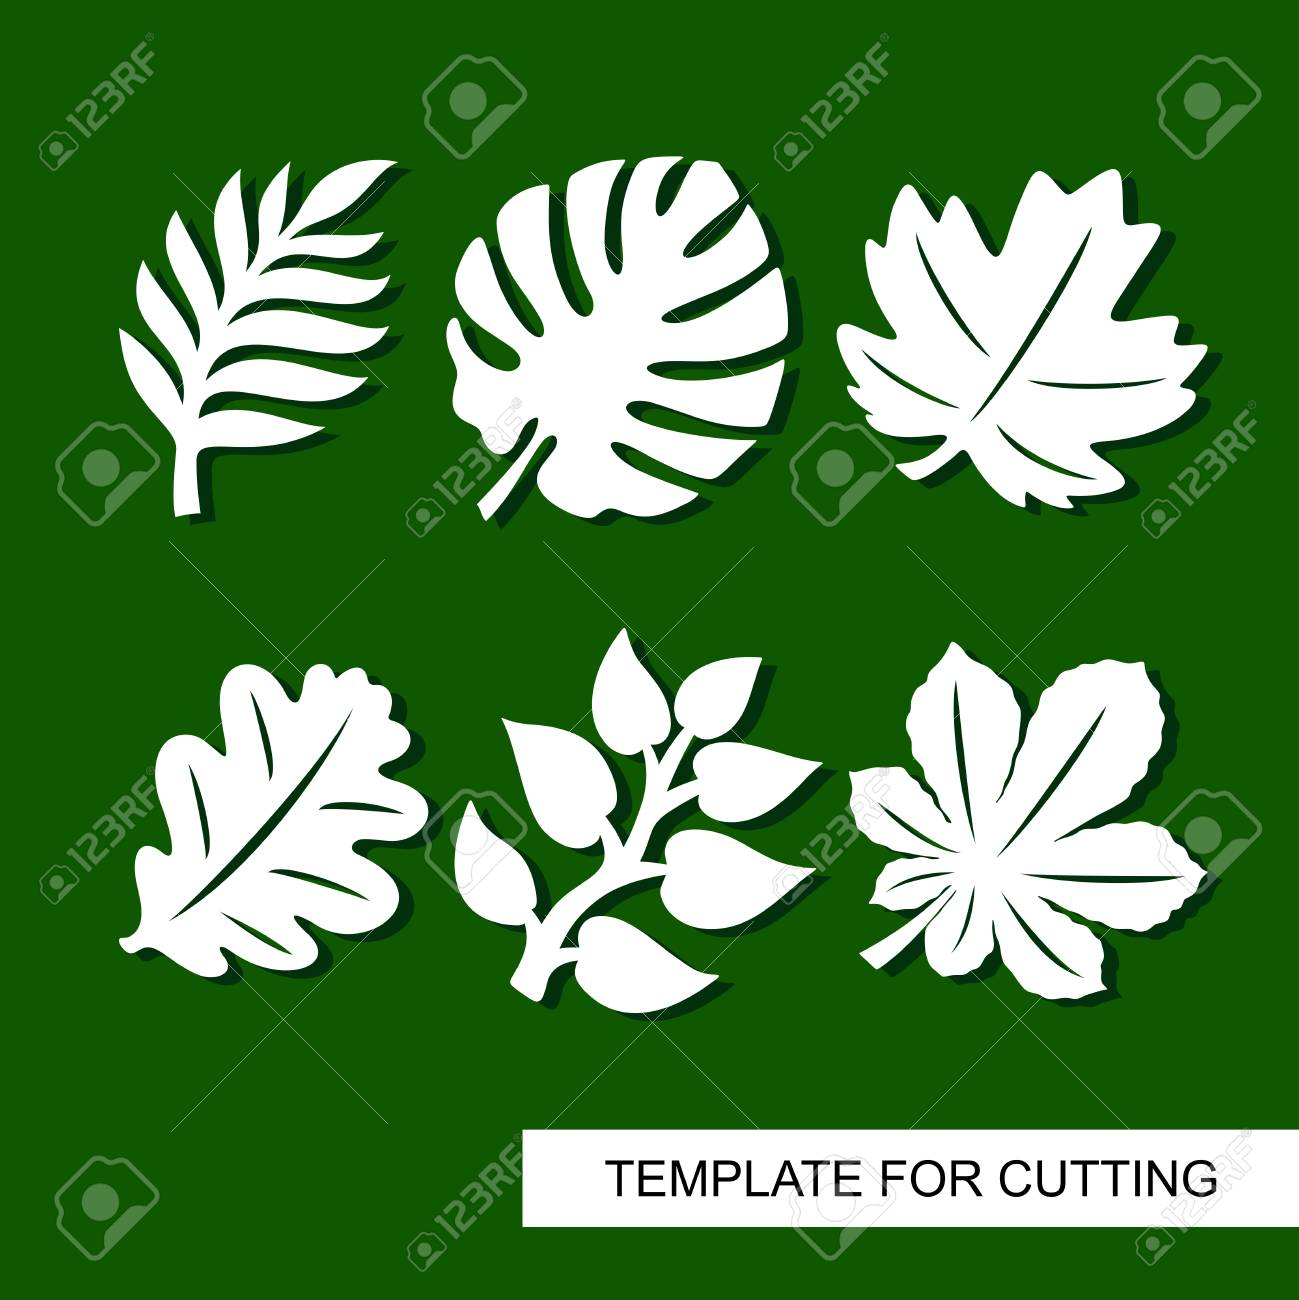 Plants Theme Silhouettes Of Tropical Palm Leaves Monstera Royalty Free Cliparts Vectors And Stock Illustration Image 102529187 Leaf template printable printable leaves heart template leaf coloring page coloring pages. 123rf com